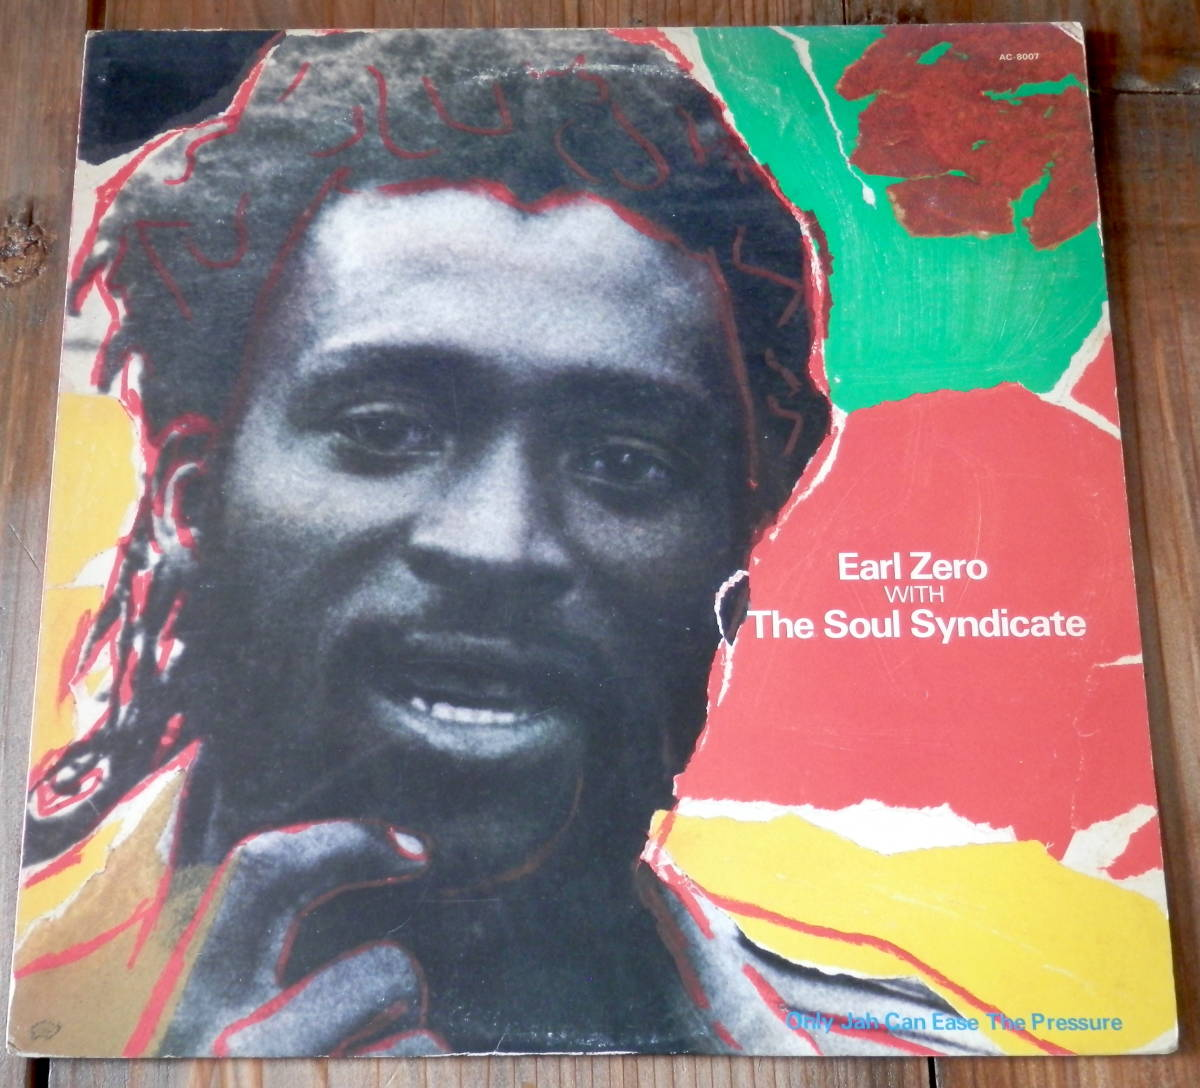 国内'84【LP】Earl Zero with The Soul Syndicate/Only Jah Can Ease The Pressure_画像1